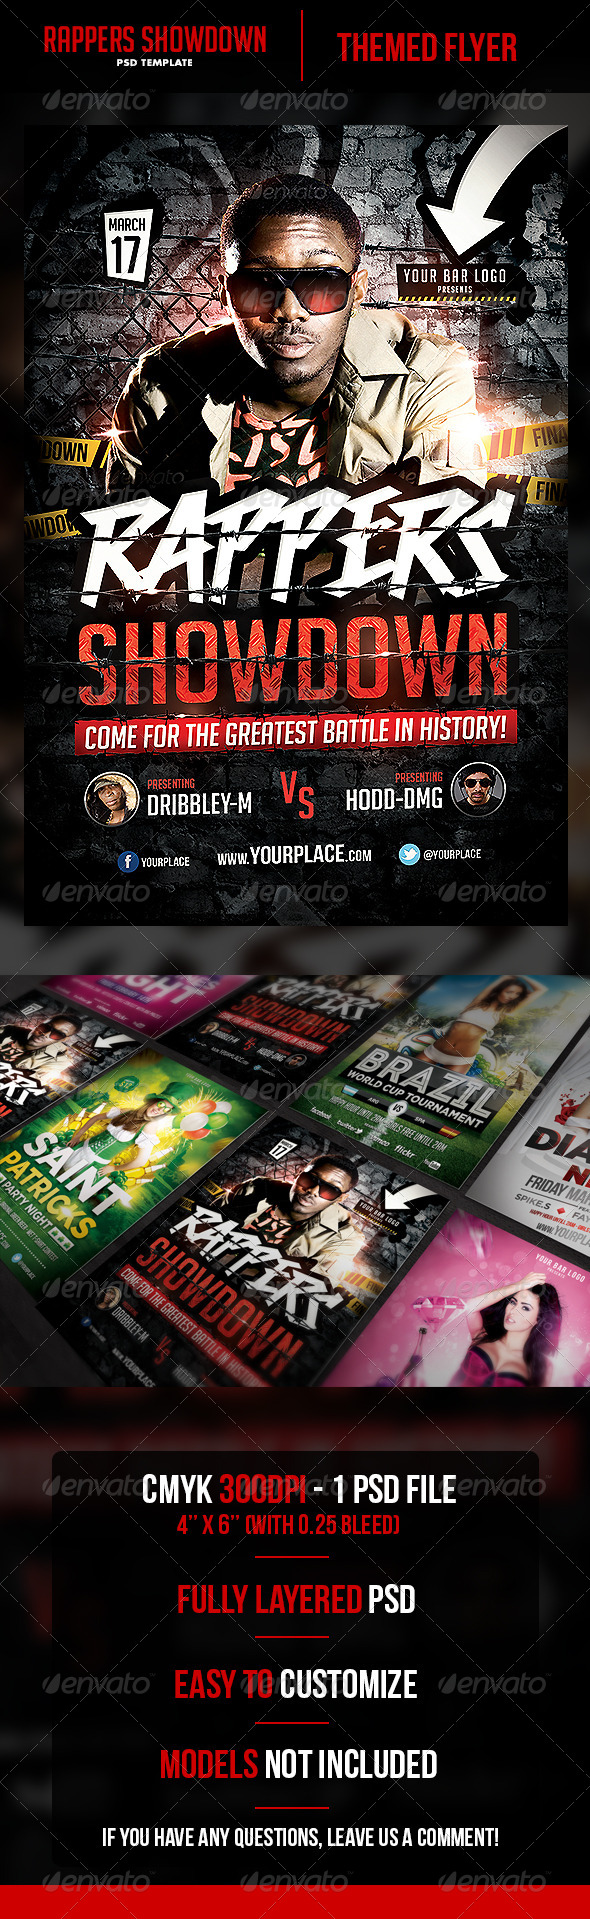 Rappers Showdown Flyer Template  - Flyers Print Templates